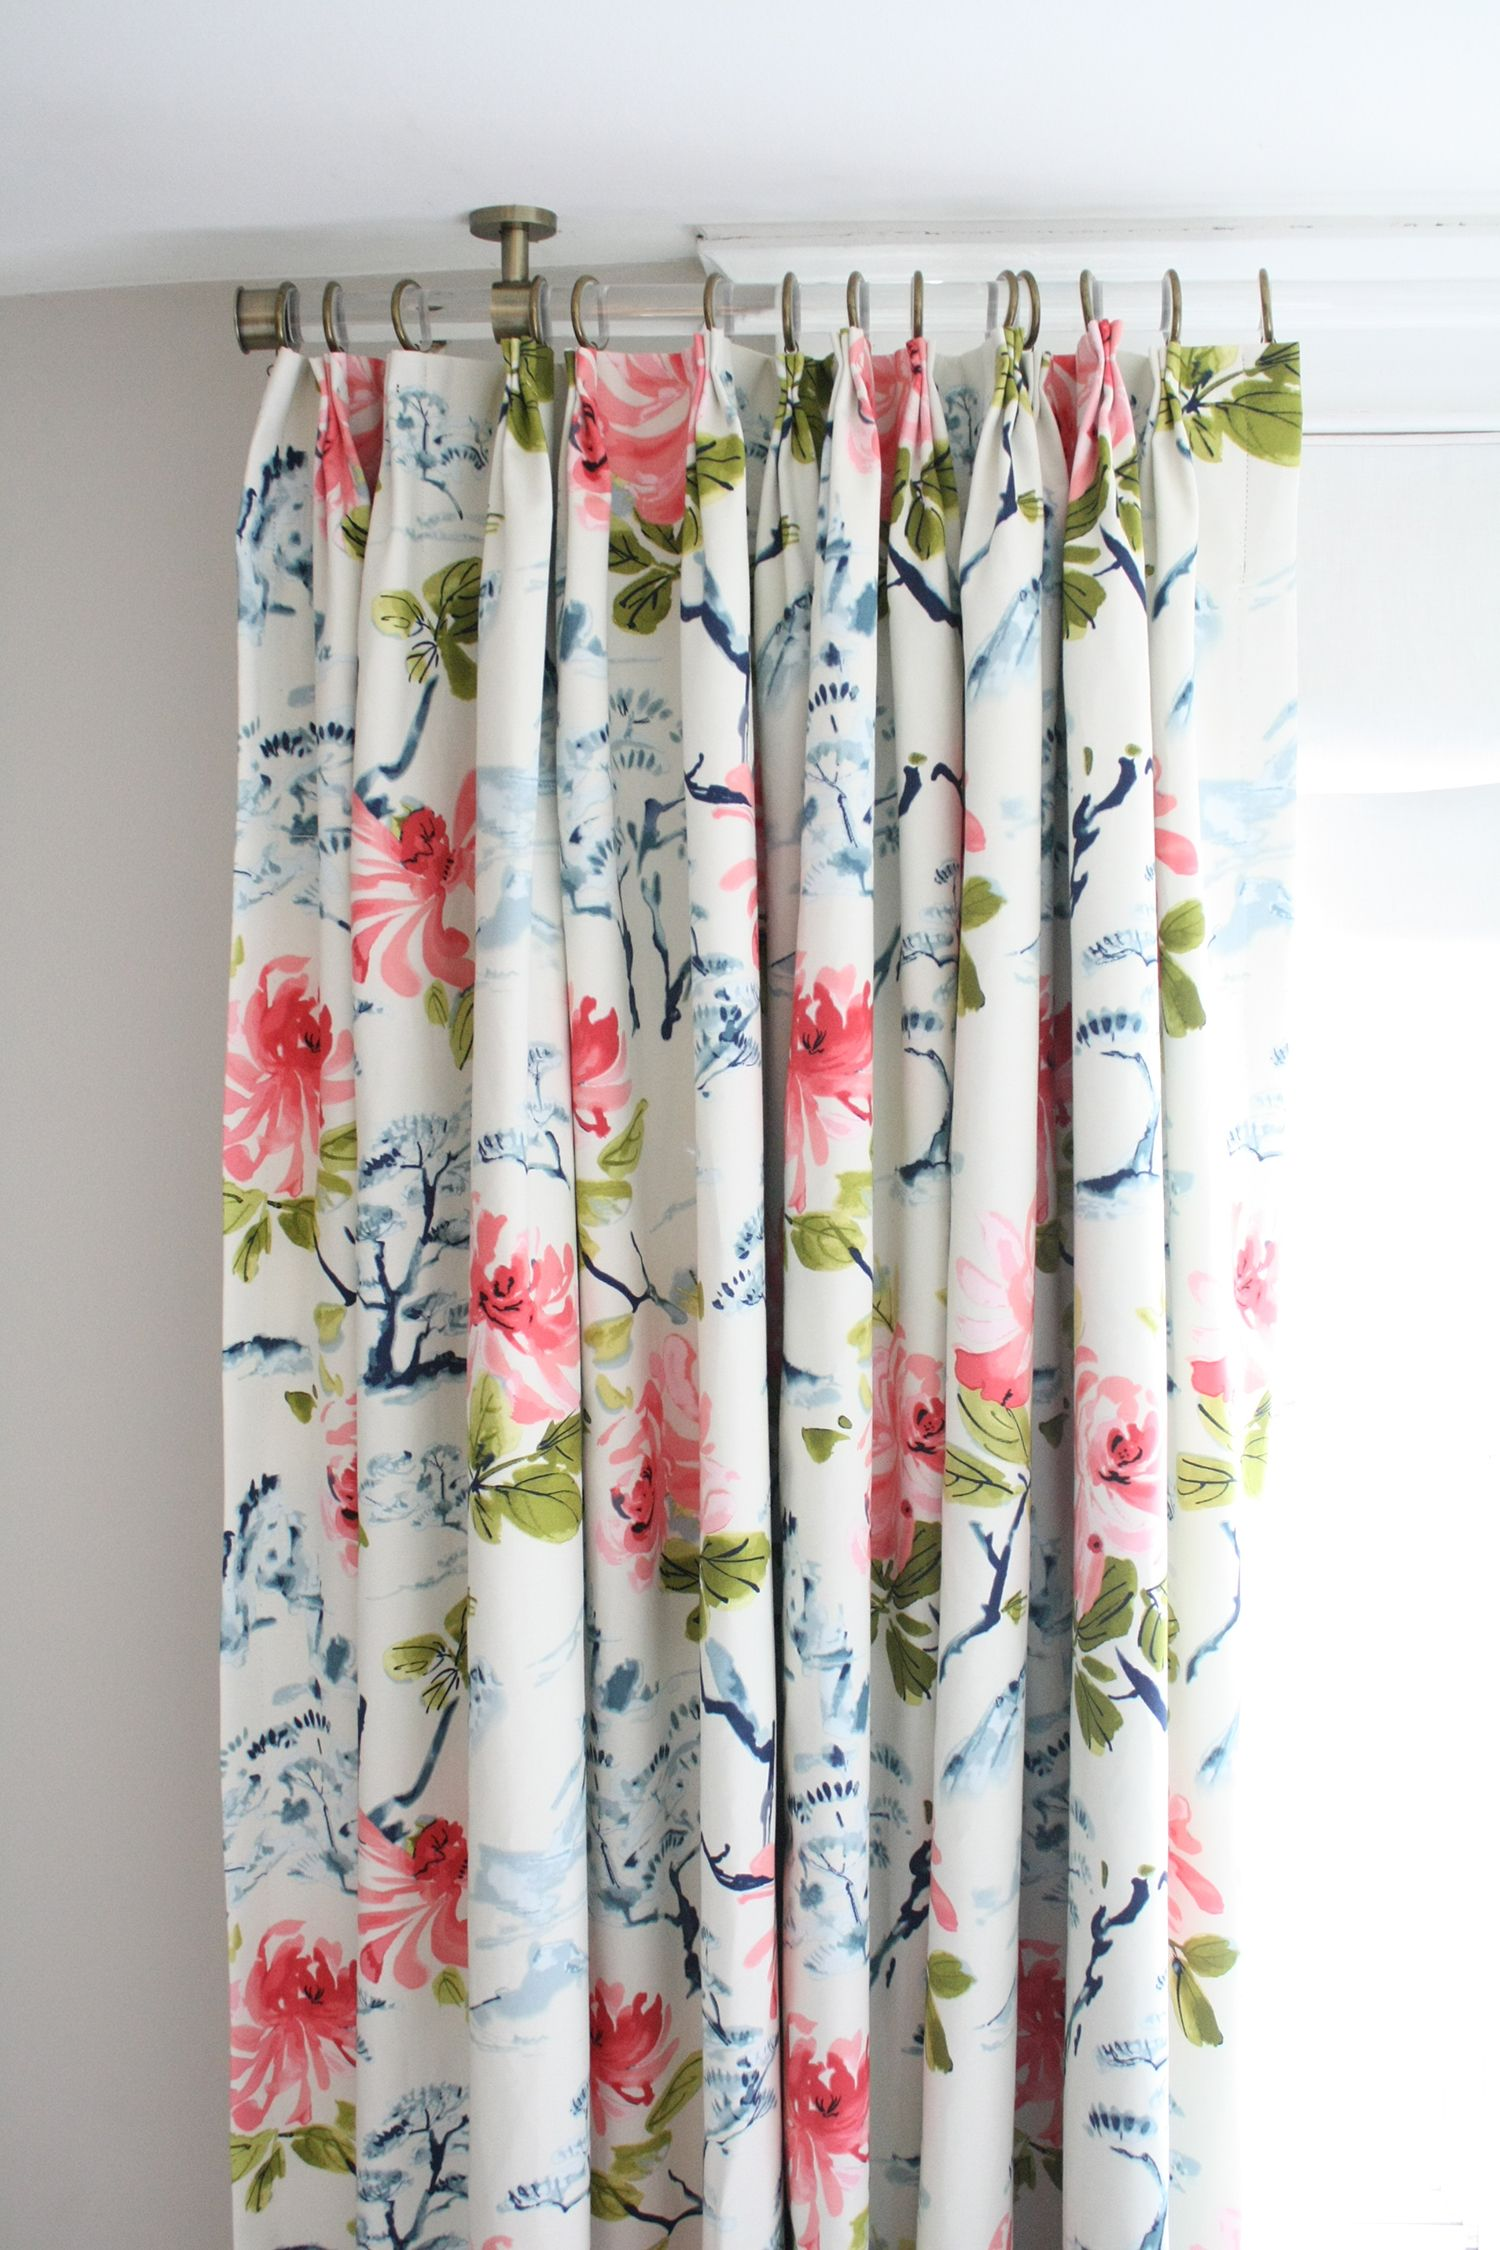 Stunning Floral Curtains With Pink Peonies Indigo Blue